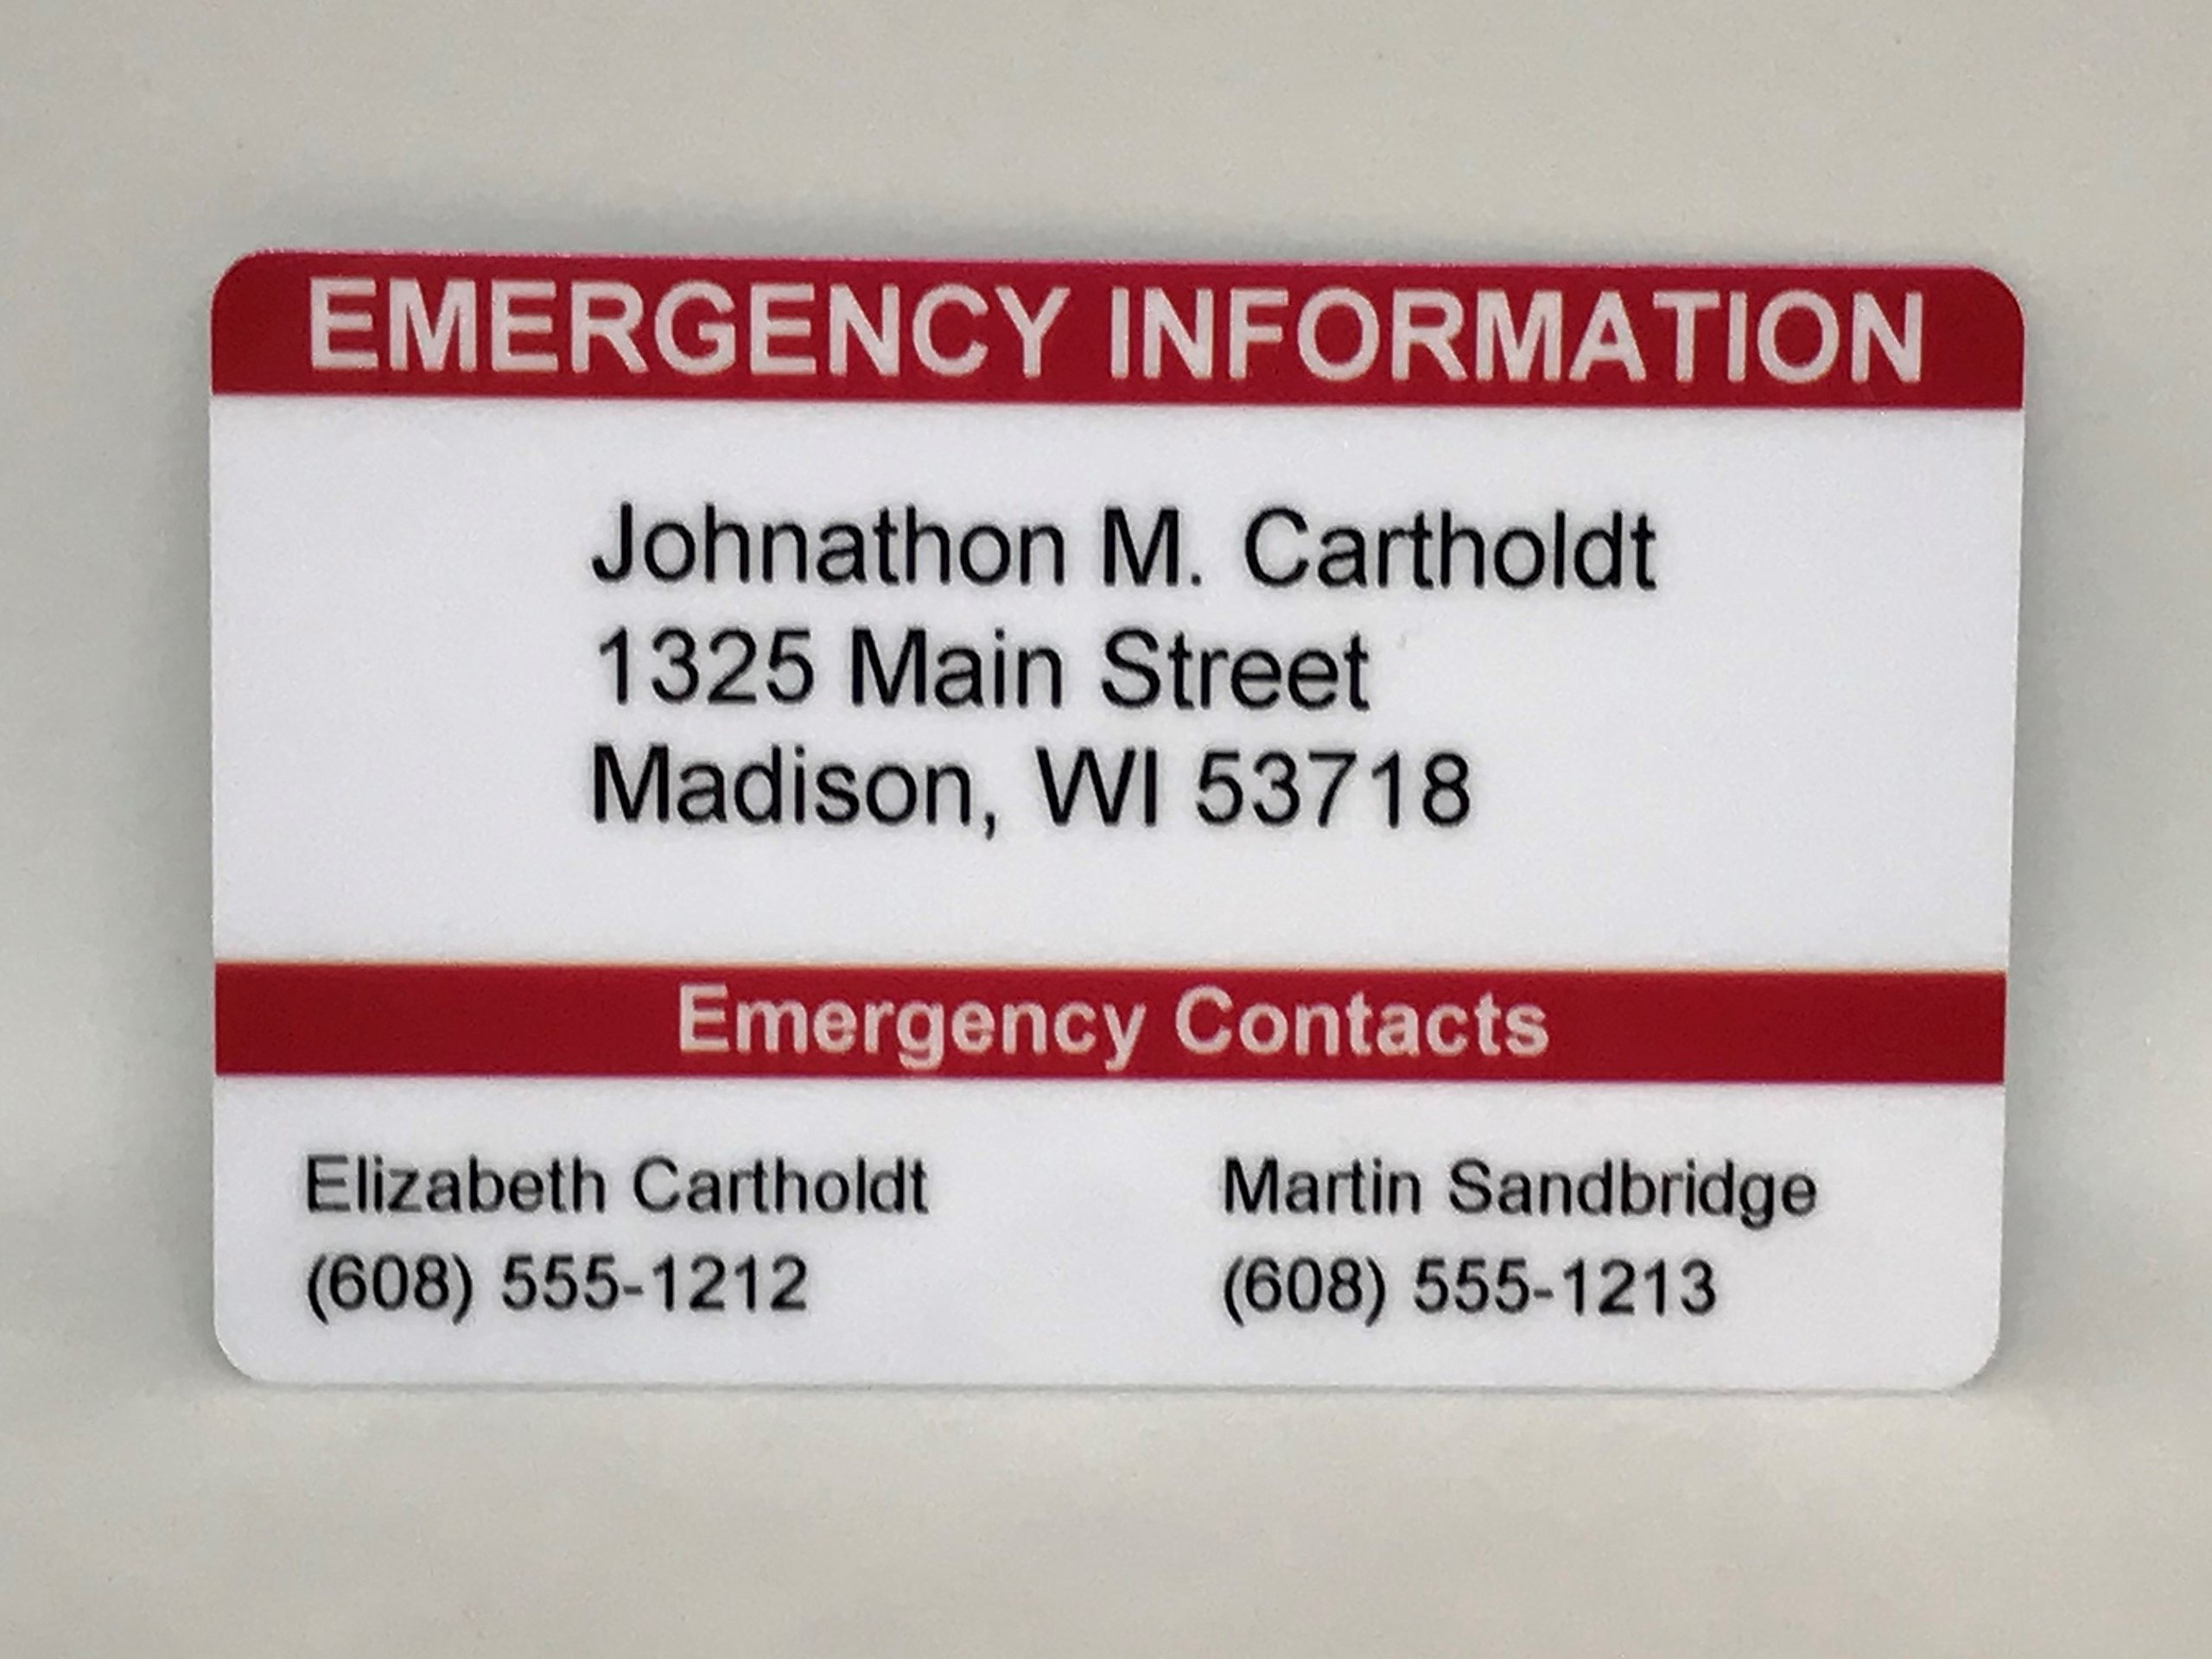 Emergency Contact Wallet Card ICE Card Medical ID Card Customizable! Emergency Identification